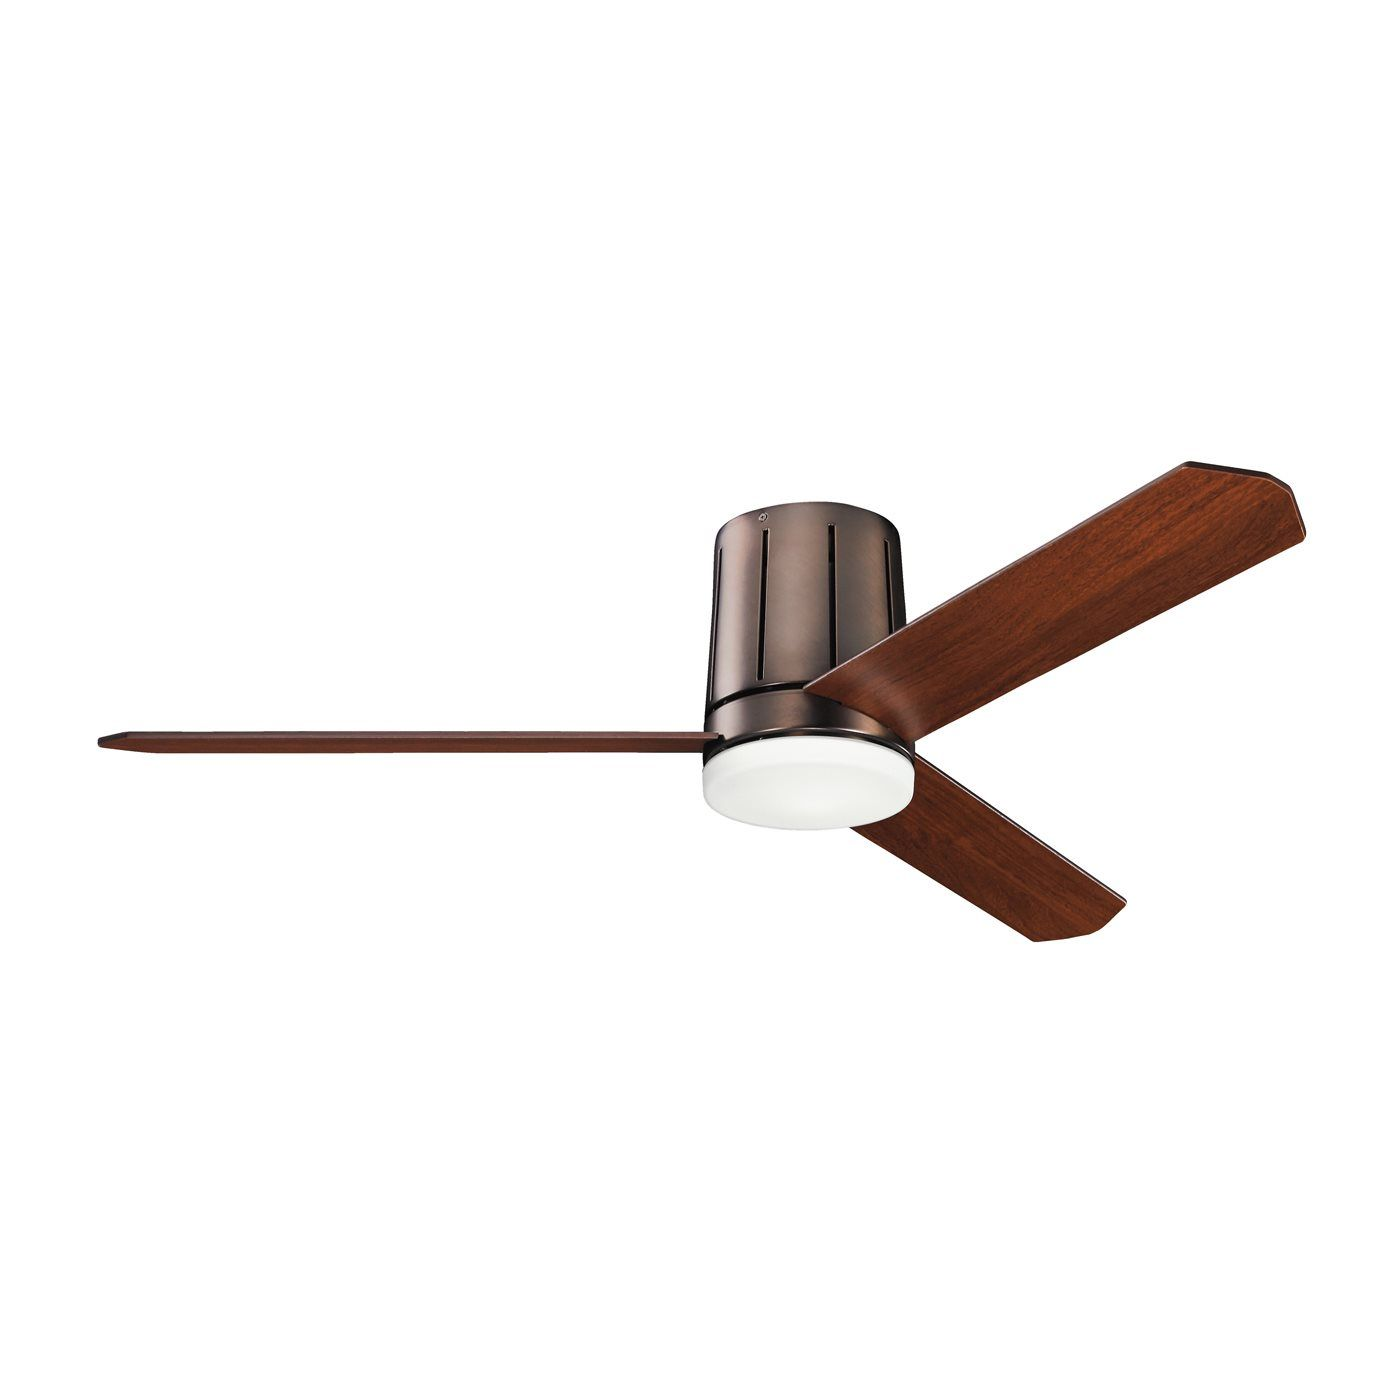 Shop Kichler Lighting Innes 52 in Ceiling Fan at ATG Stores